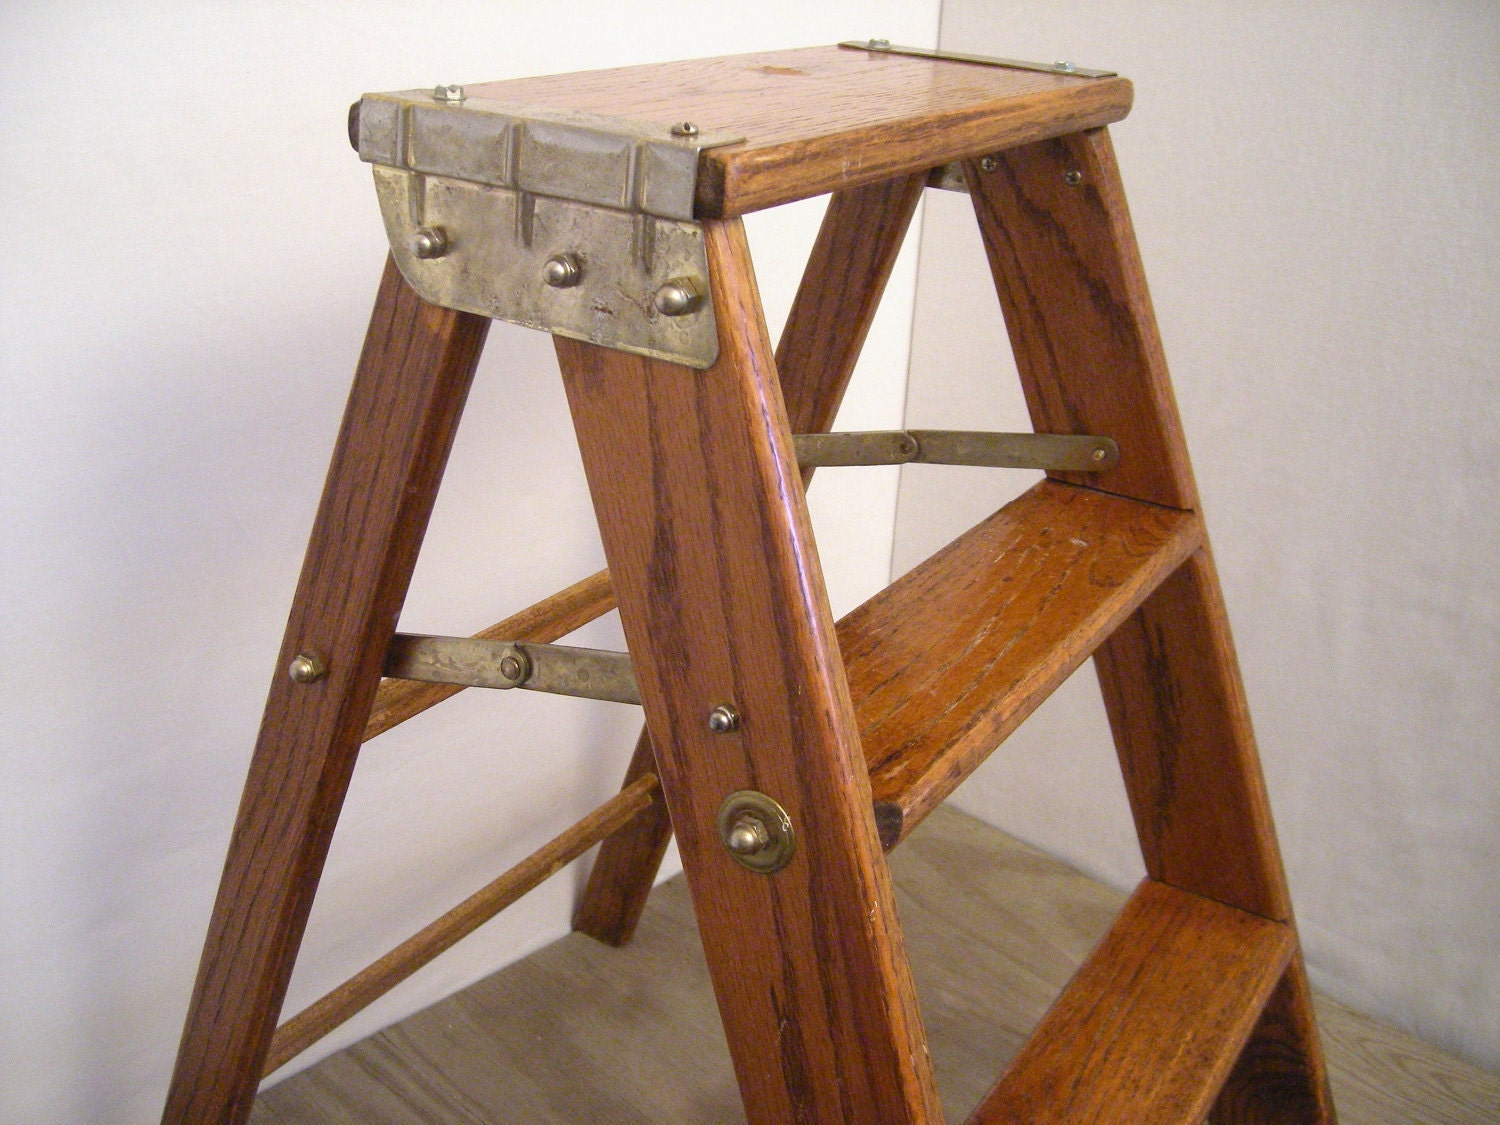 Vintage Step Ladder Wood With Metal Accents Small Decorative